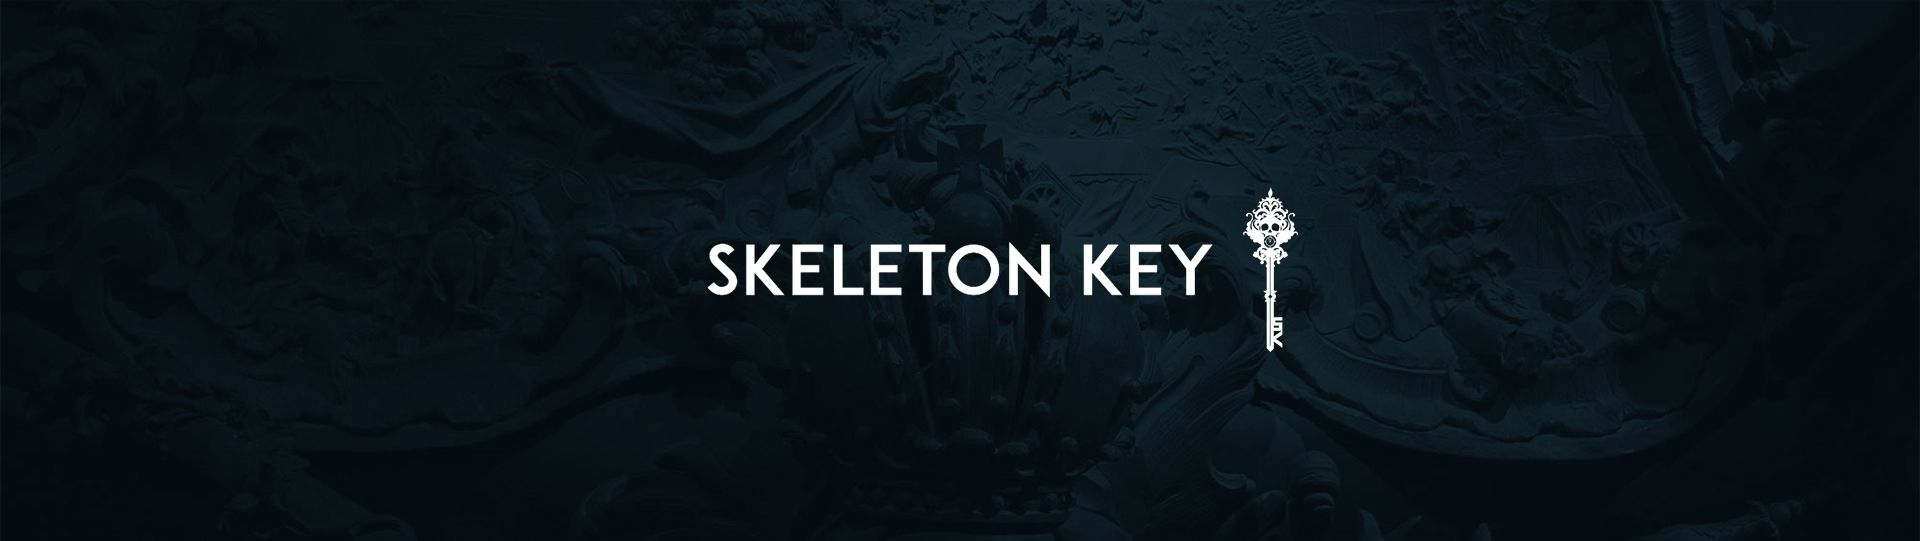 l'escape game horreur Skeleton Key à Paris.jpg